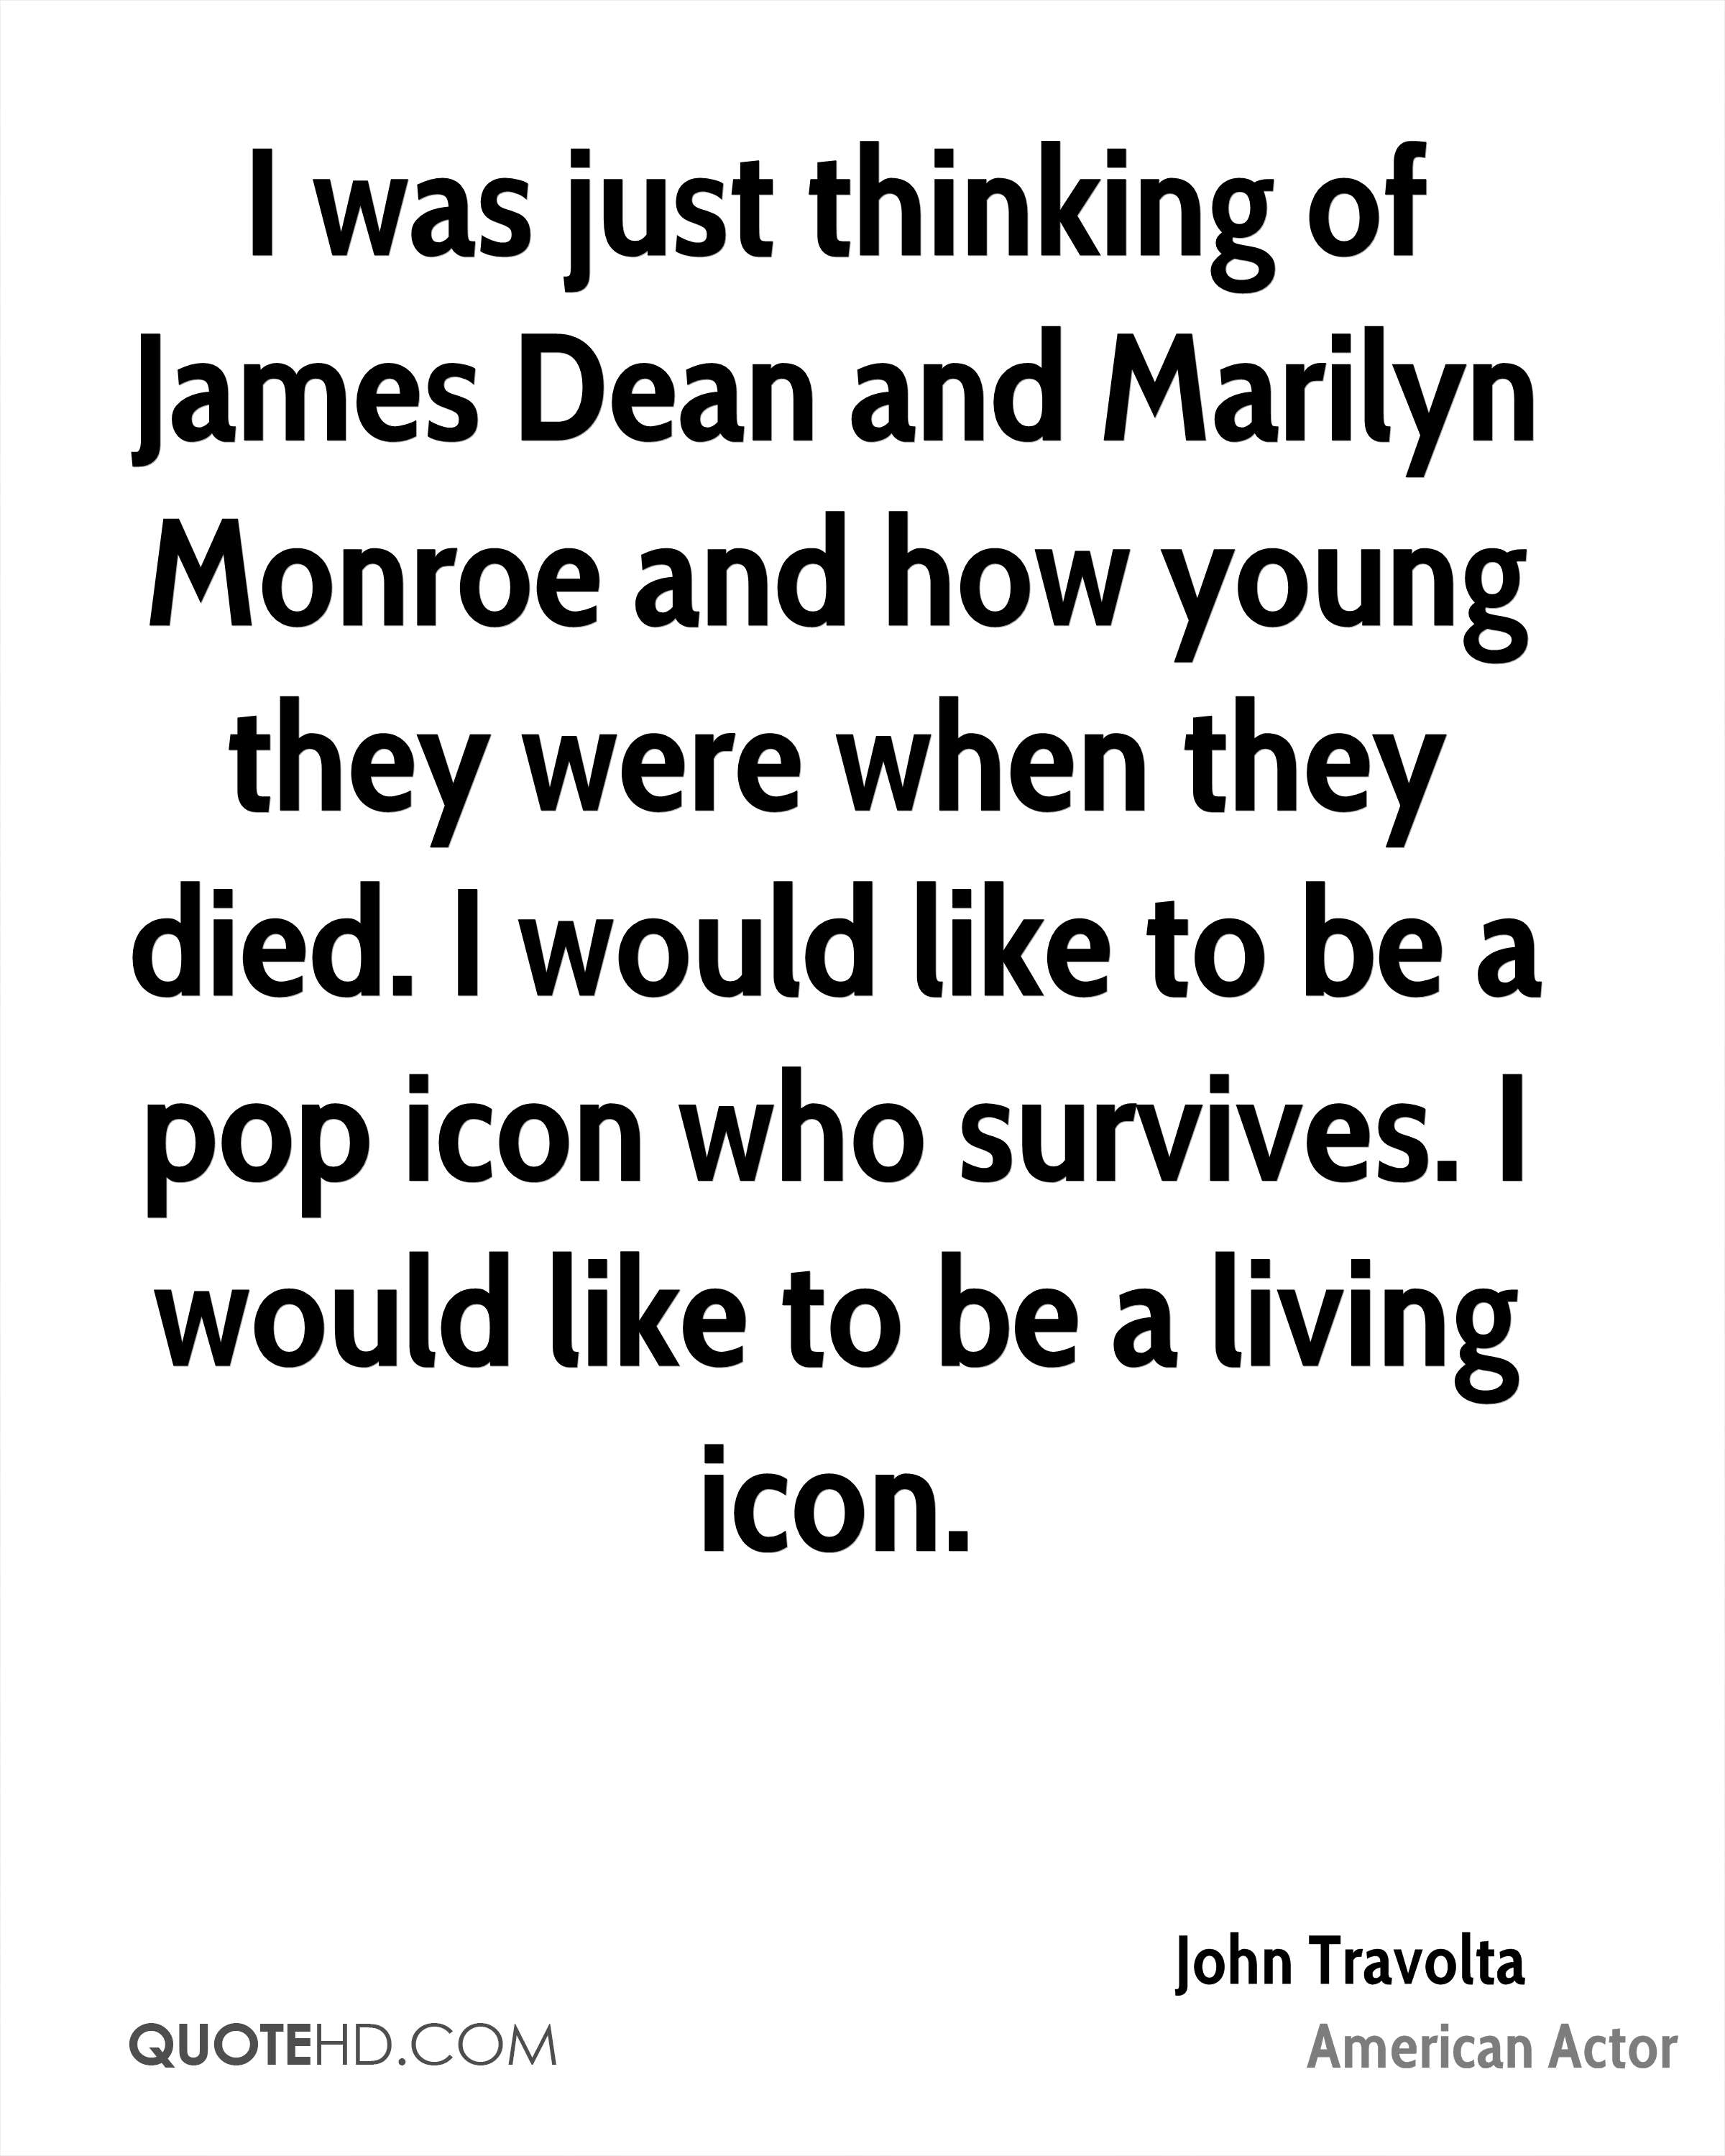 I was just thinking of James Dean and Marilyn Monroe and how young they were when they died. I would like to be a pop icon who survives. I would like to be a living icon.